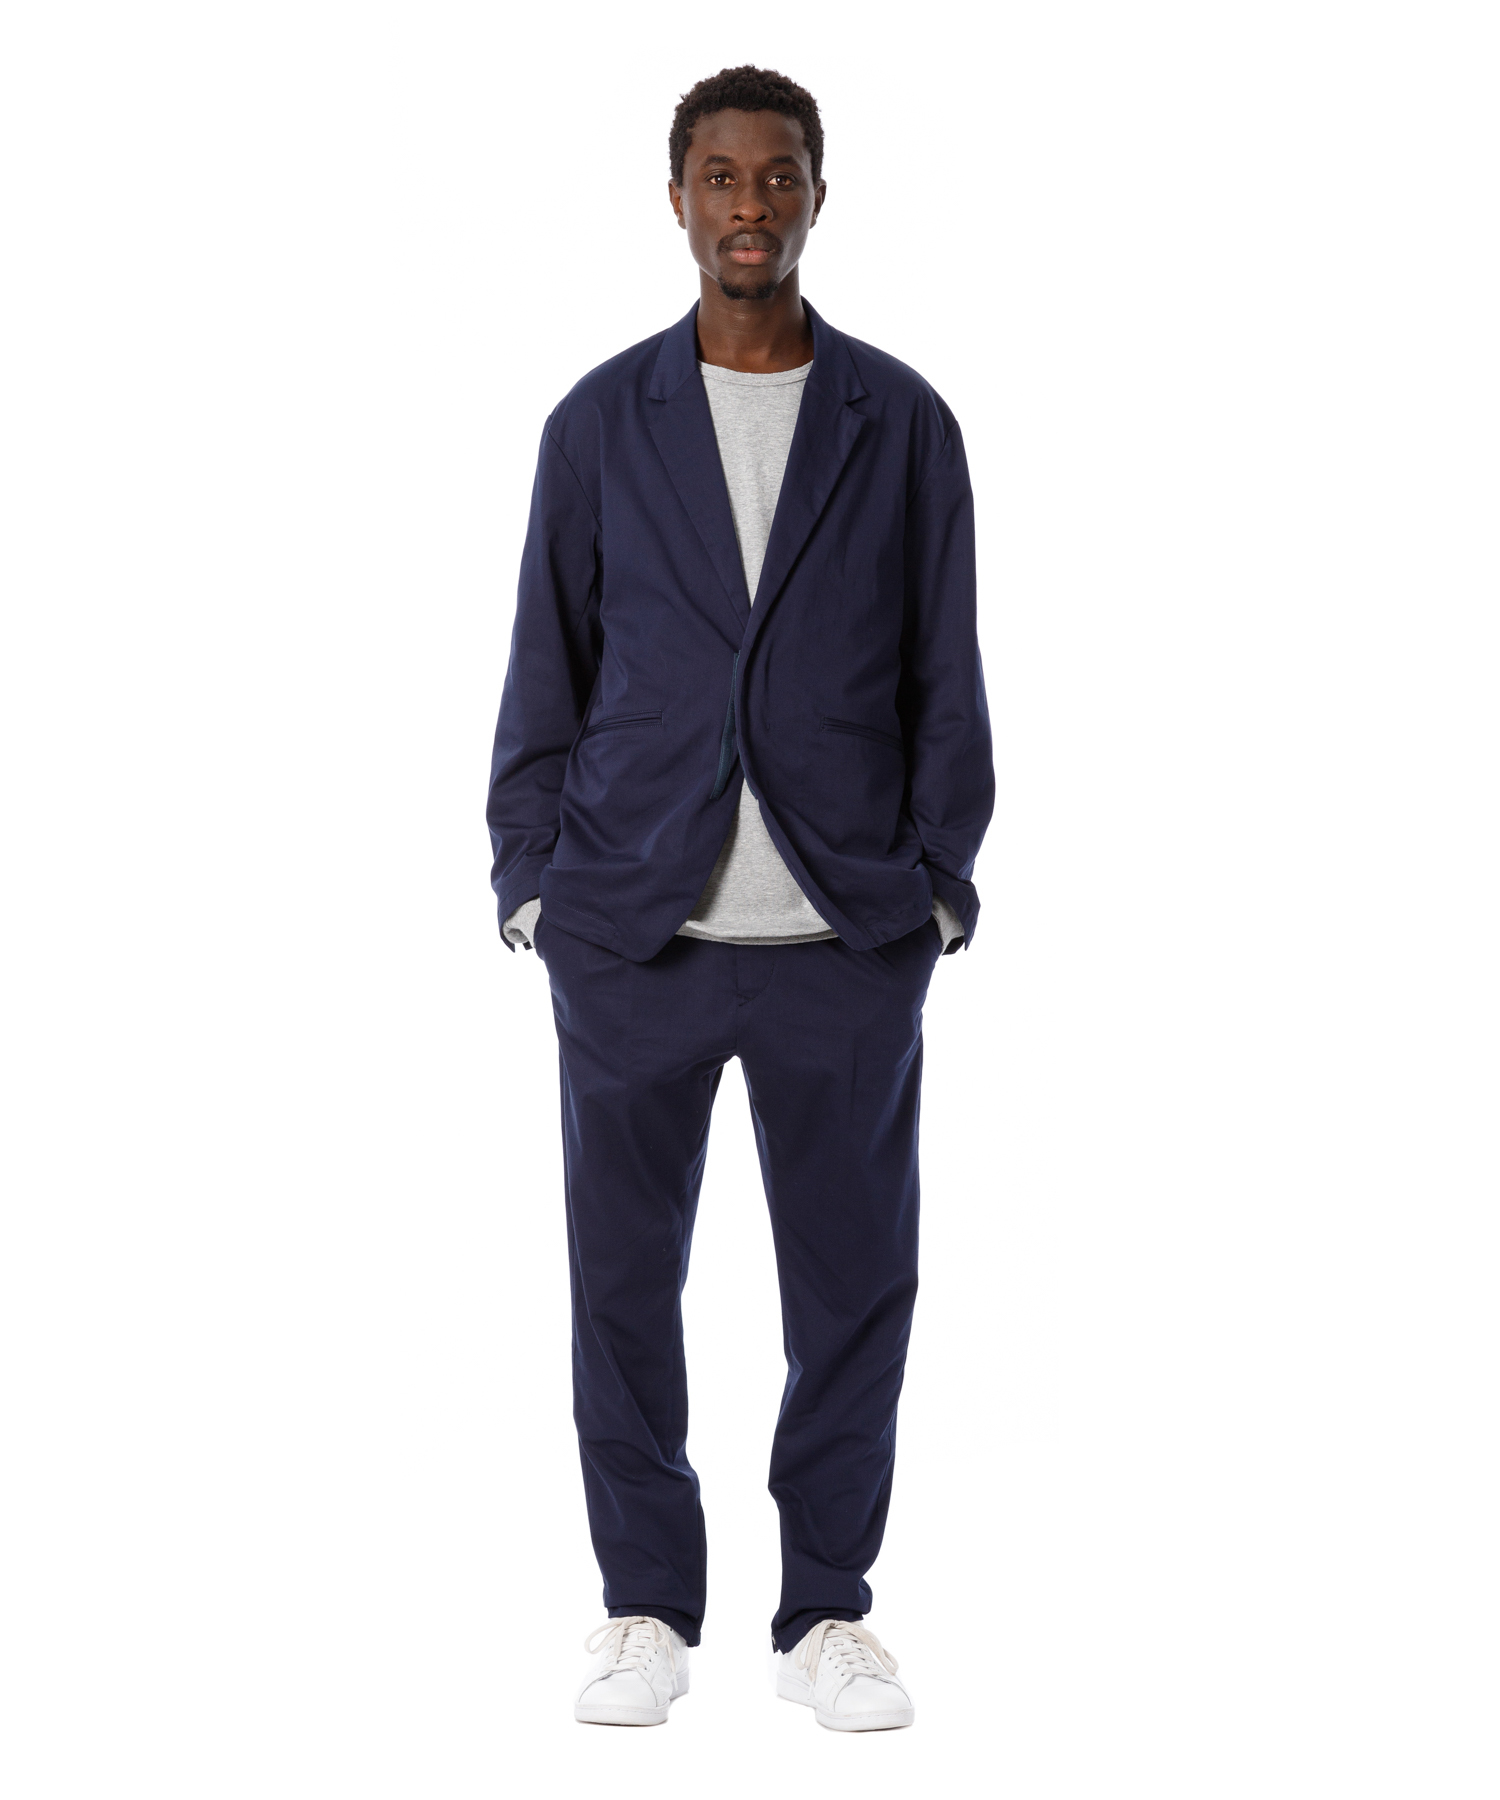 SANDINISTAの COOLMAX Stretch Jacket&Easy Tuck Pants_e0036919_17271373.jpg